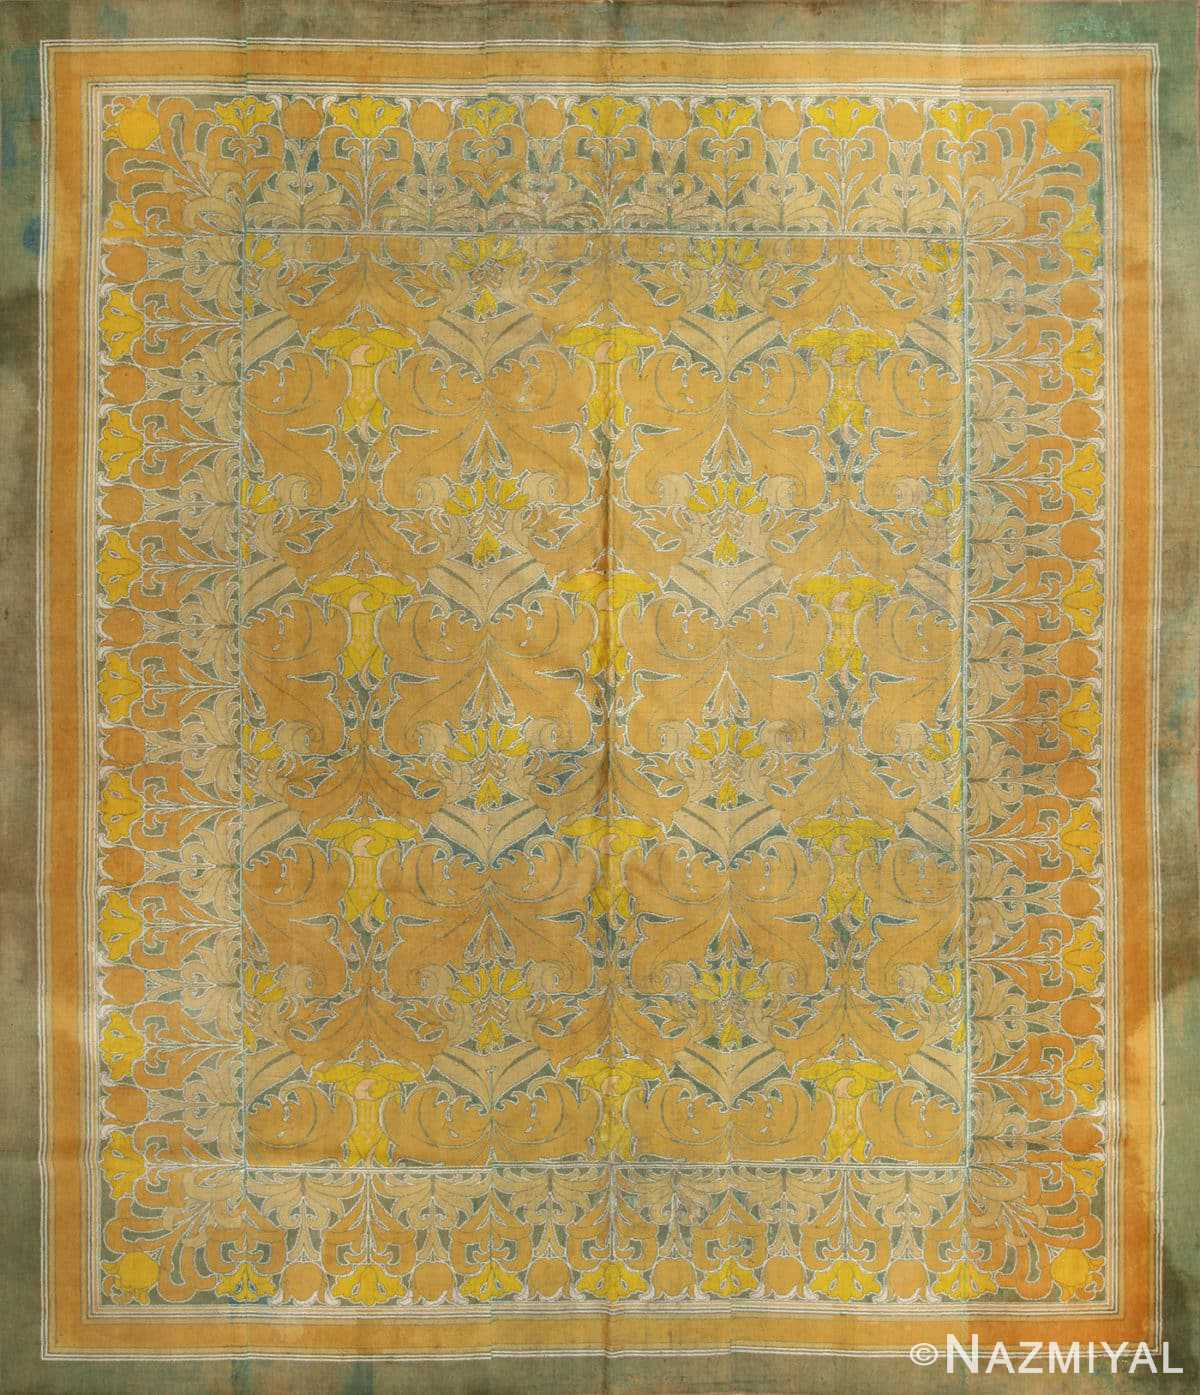 Antique Arts And Crafts Rugs: Antique Wilton English Arts And Crafts Rug 2657 Nazmiyal